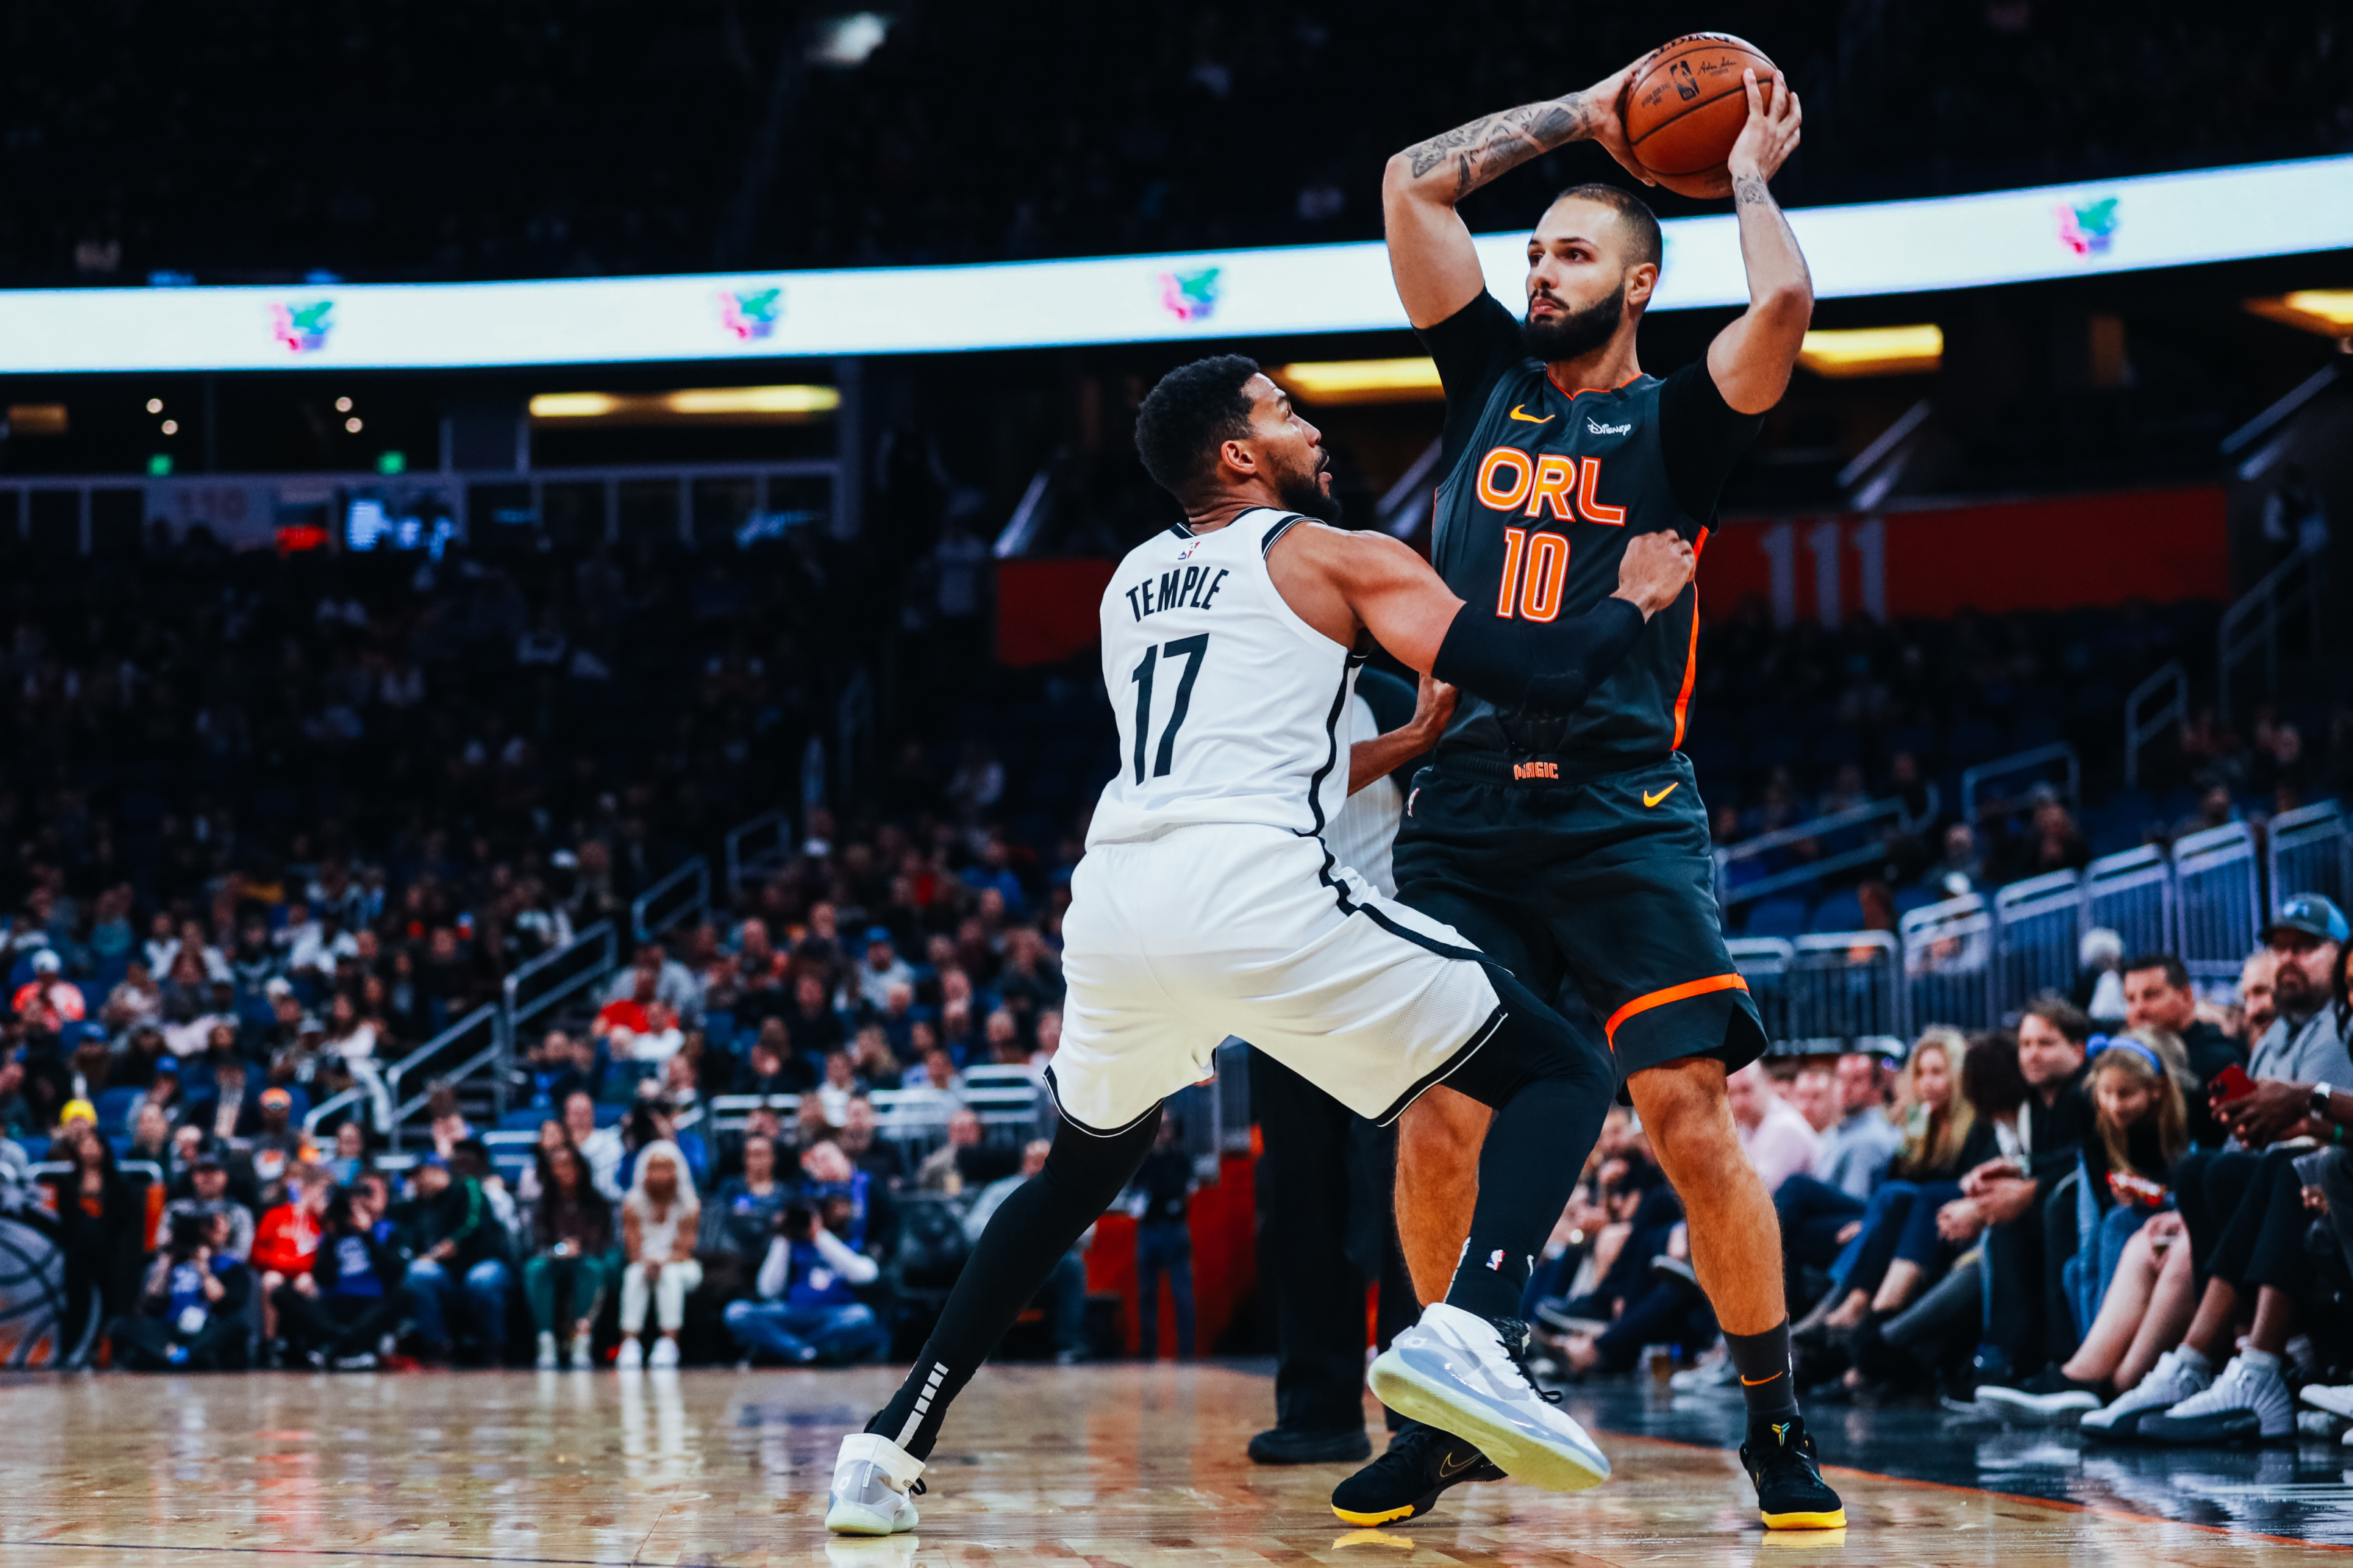 Orlando Magic At Brooklyn Nets Feb 24 2020 How To Watch Odds And Prediction